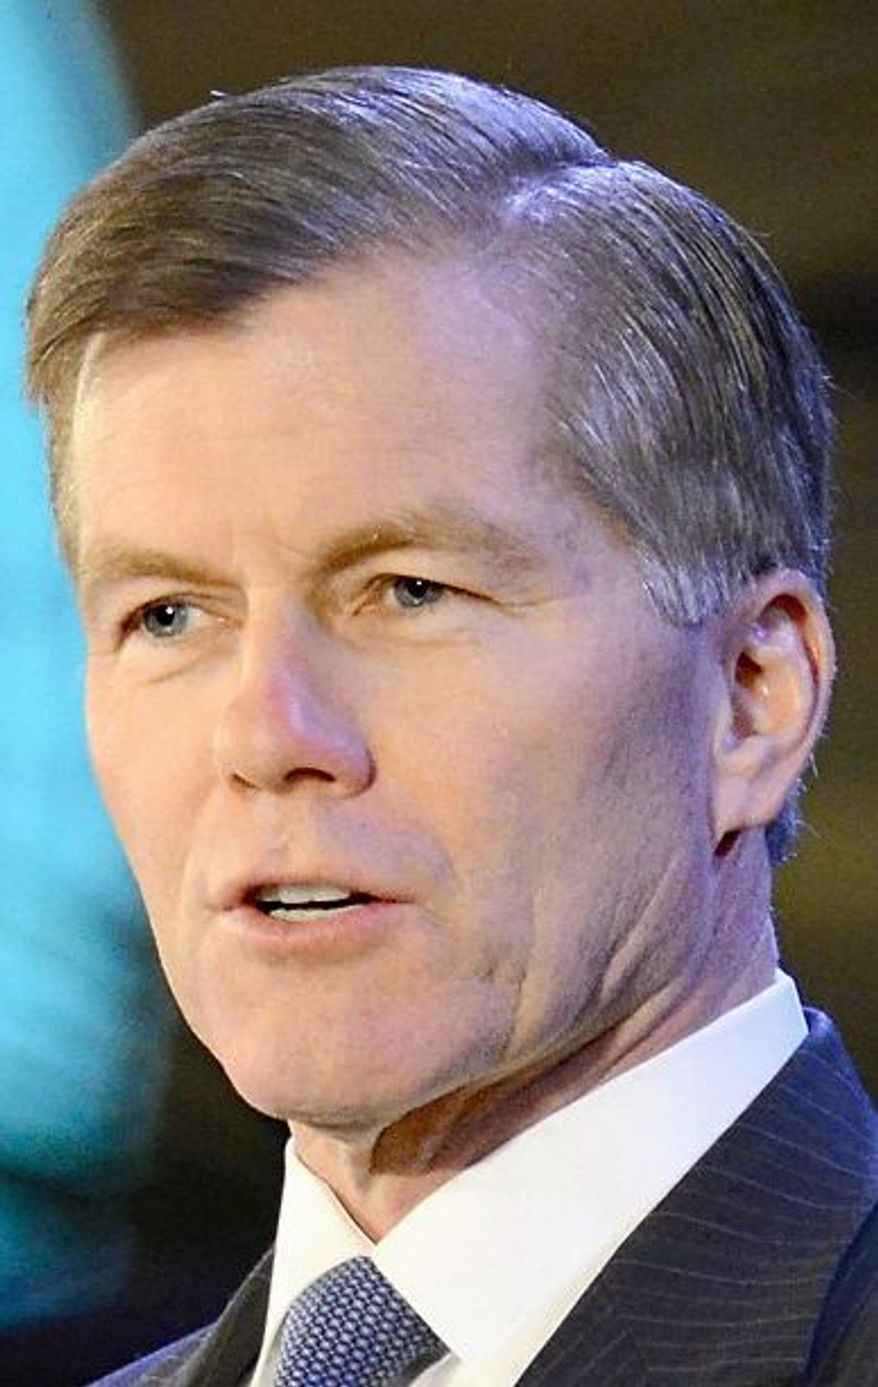 Virginia Gov. Bob McDonnell has upset some fellow Republicans by taking unpopular policy stances. (Associated Press)